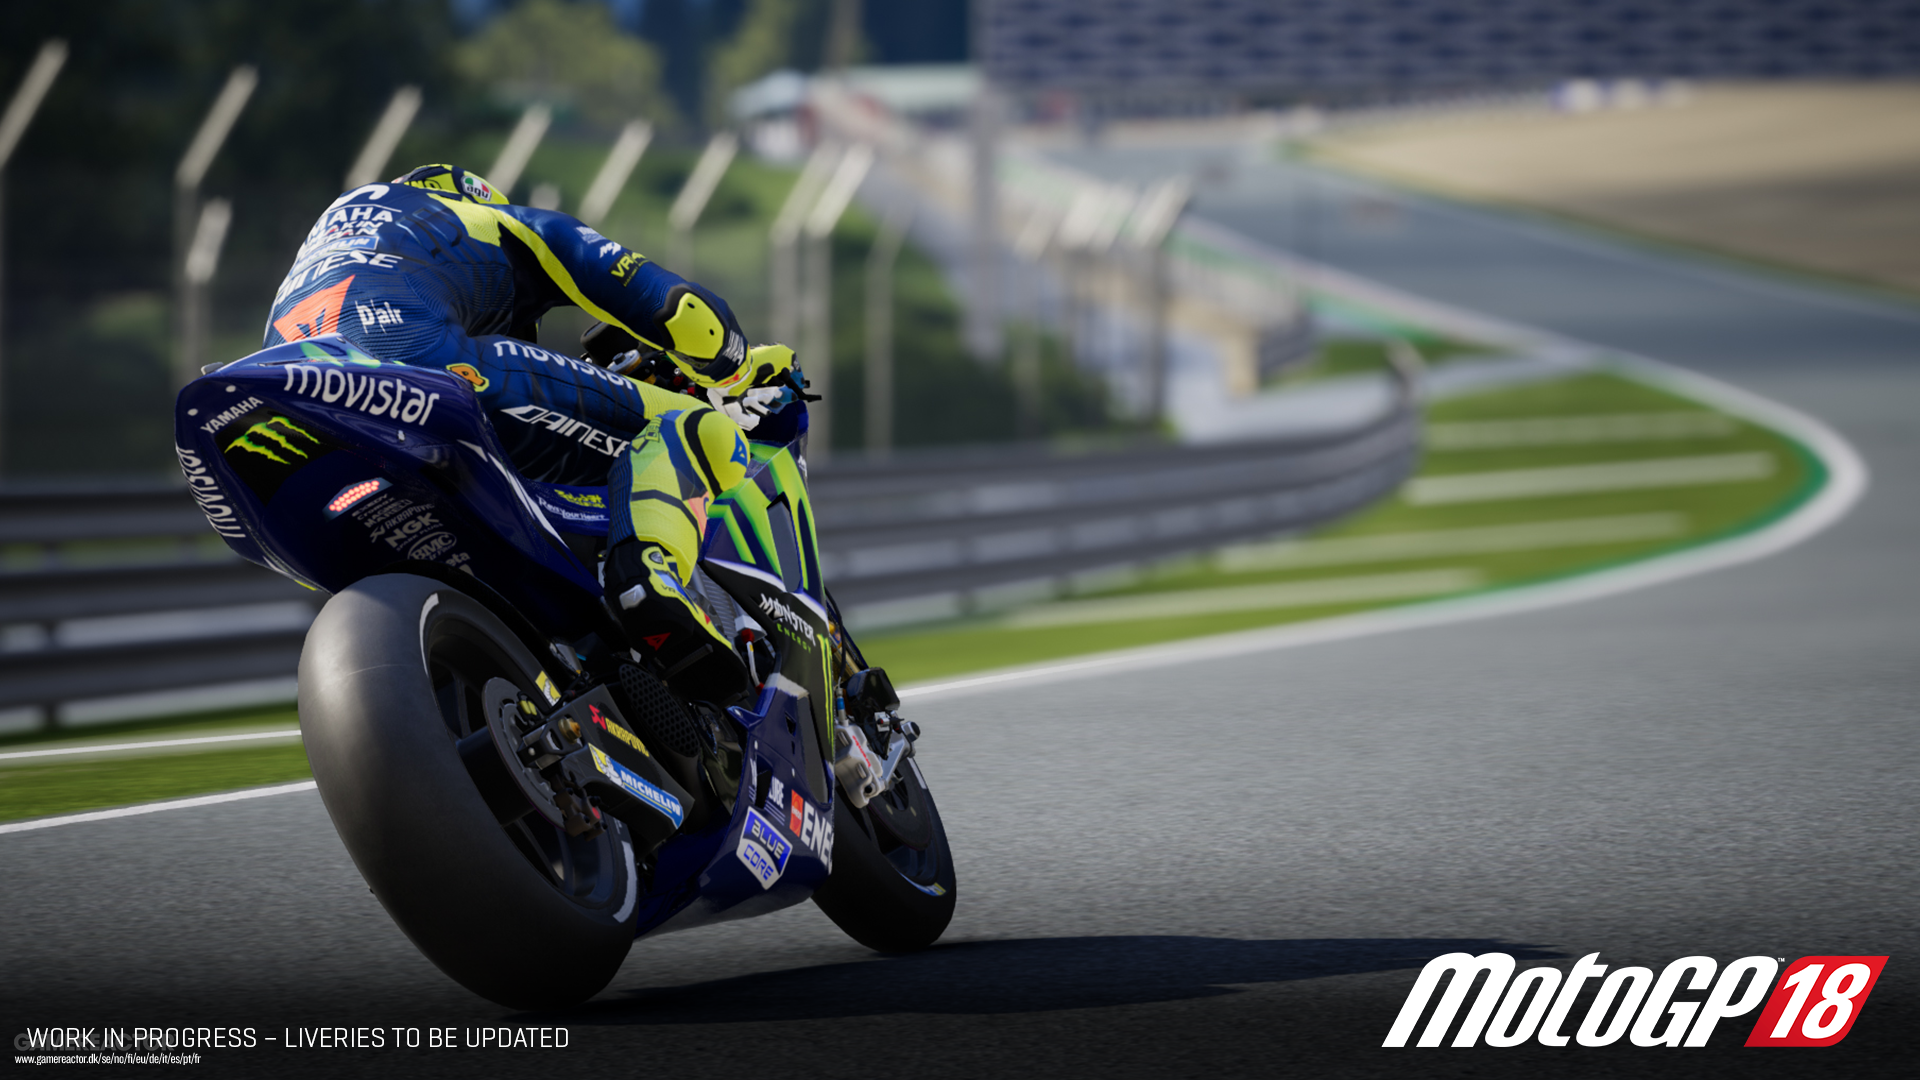 Getting Back On The Bike Motogp 18 Mxgp Pro Ride 3